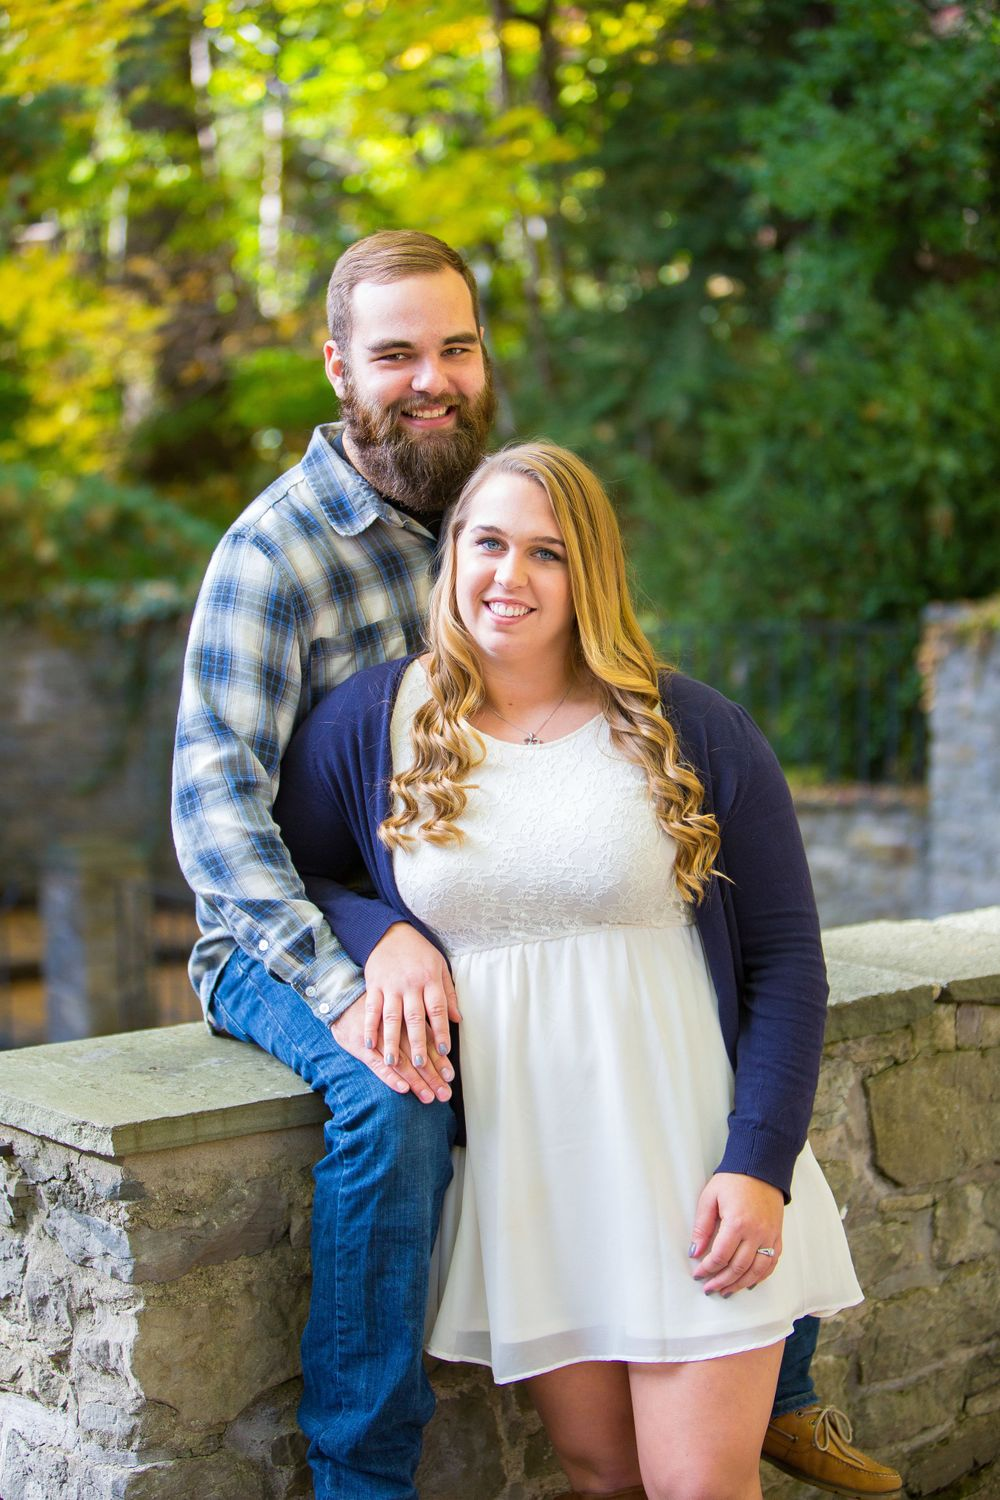 Engagement Shoot at Highland Park in Rochester, NY